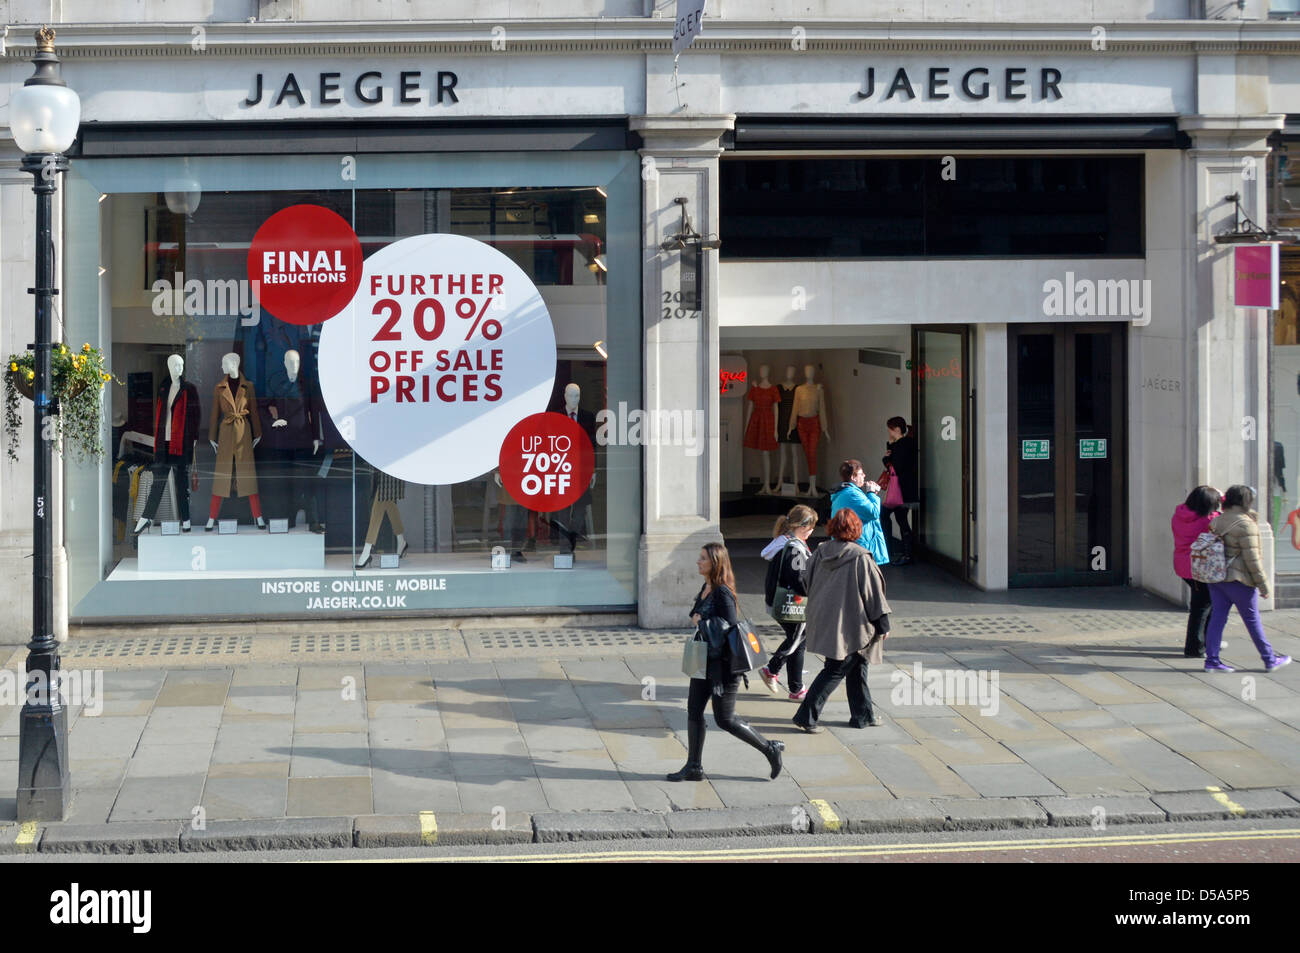 Regent Street fashion store Jaeger shop front window with sale discount posters - Stock Image